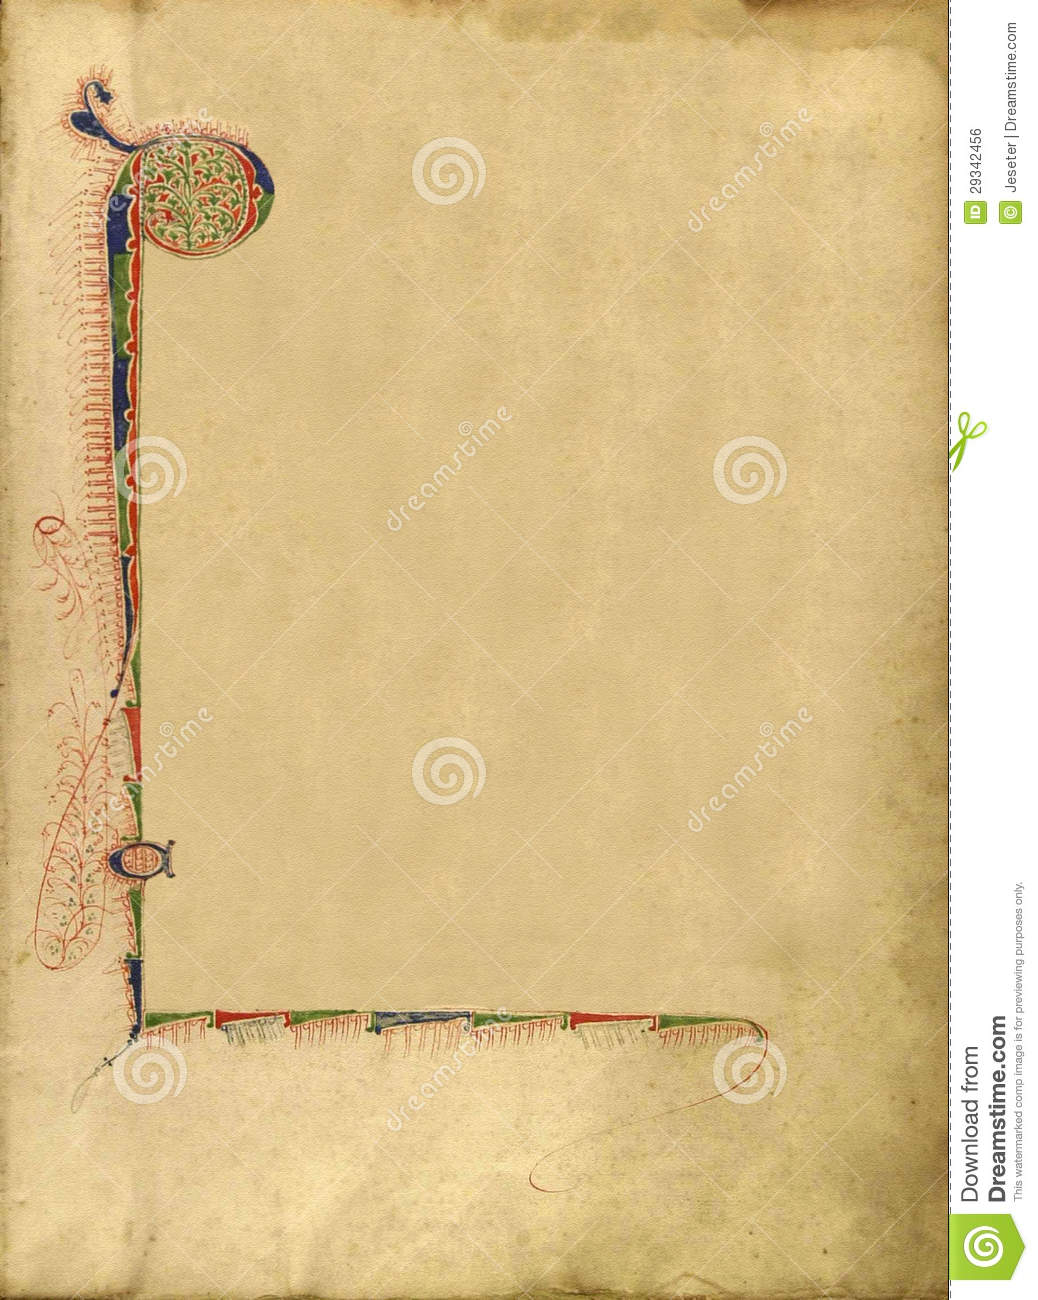 Texture Of Old Book Page Royalty Free Stock Image  Image 29342456